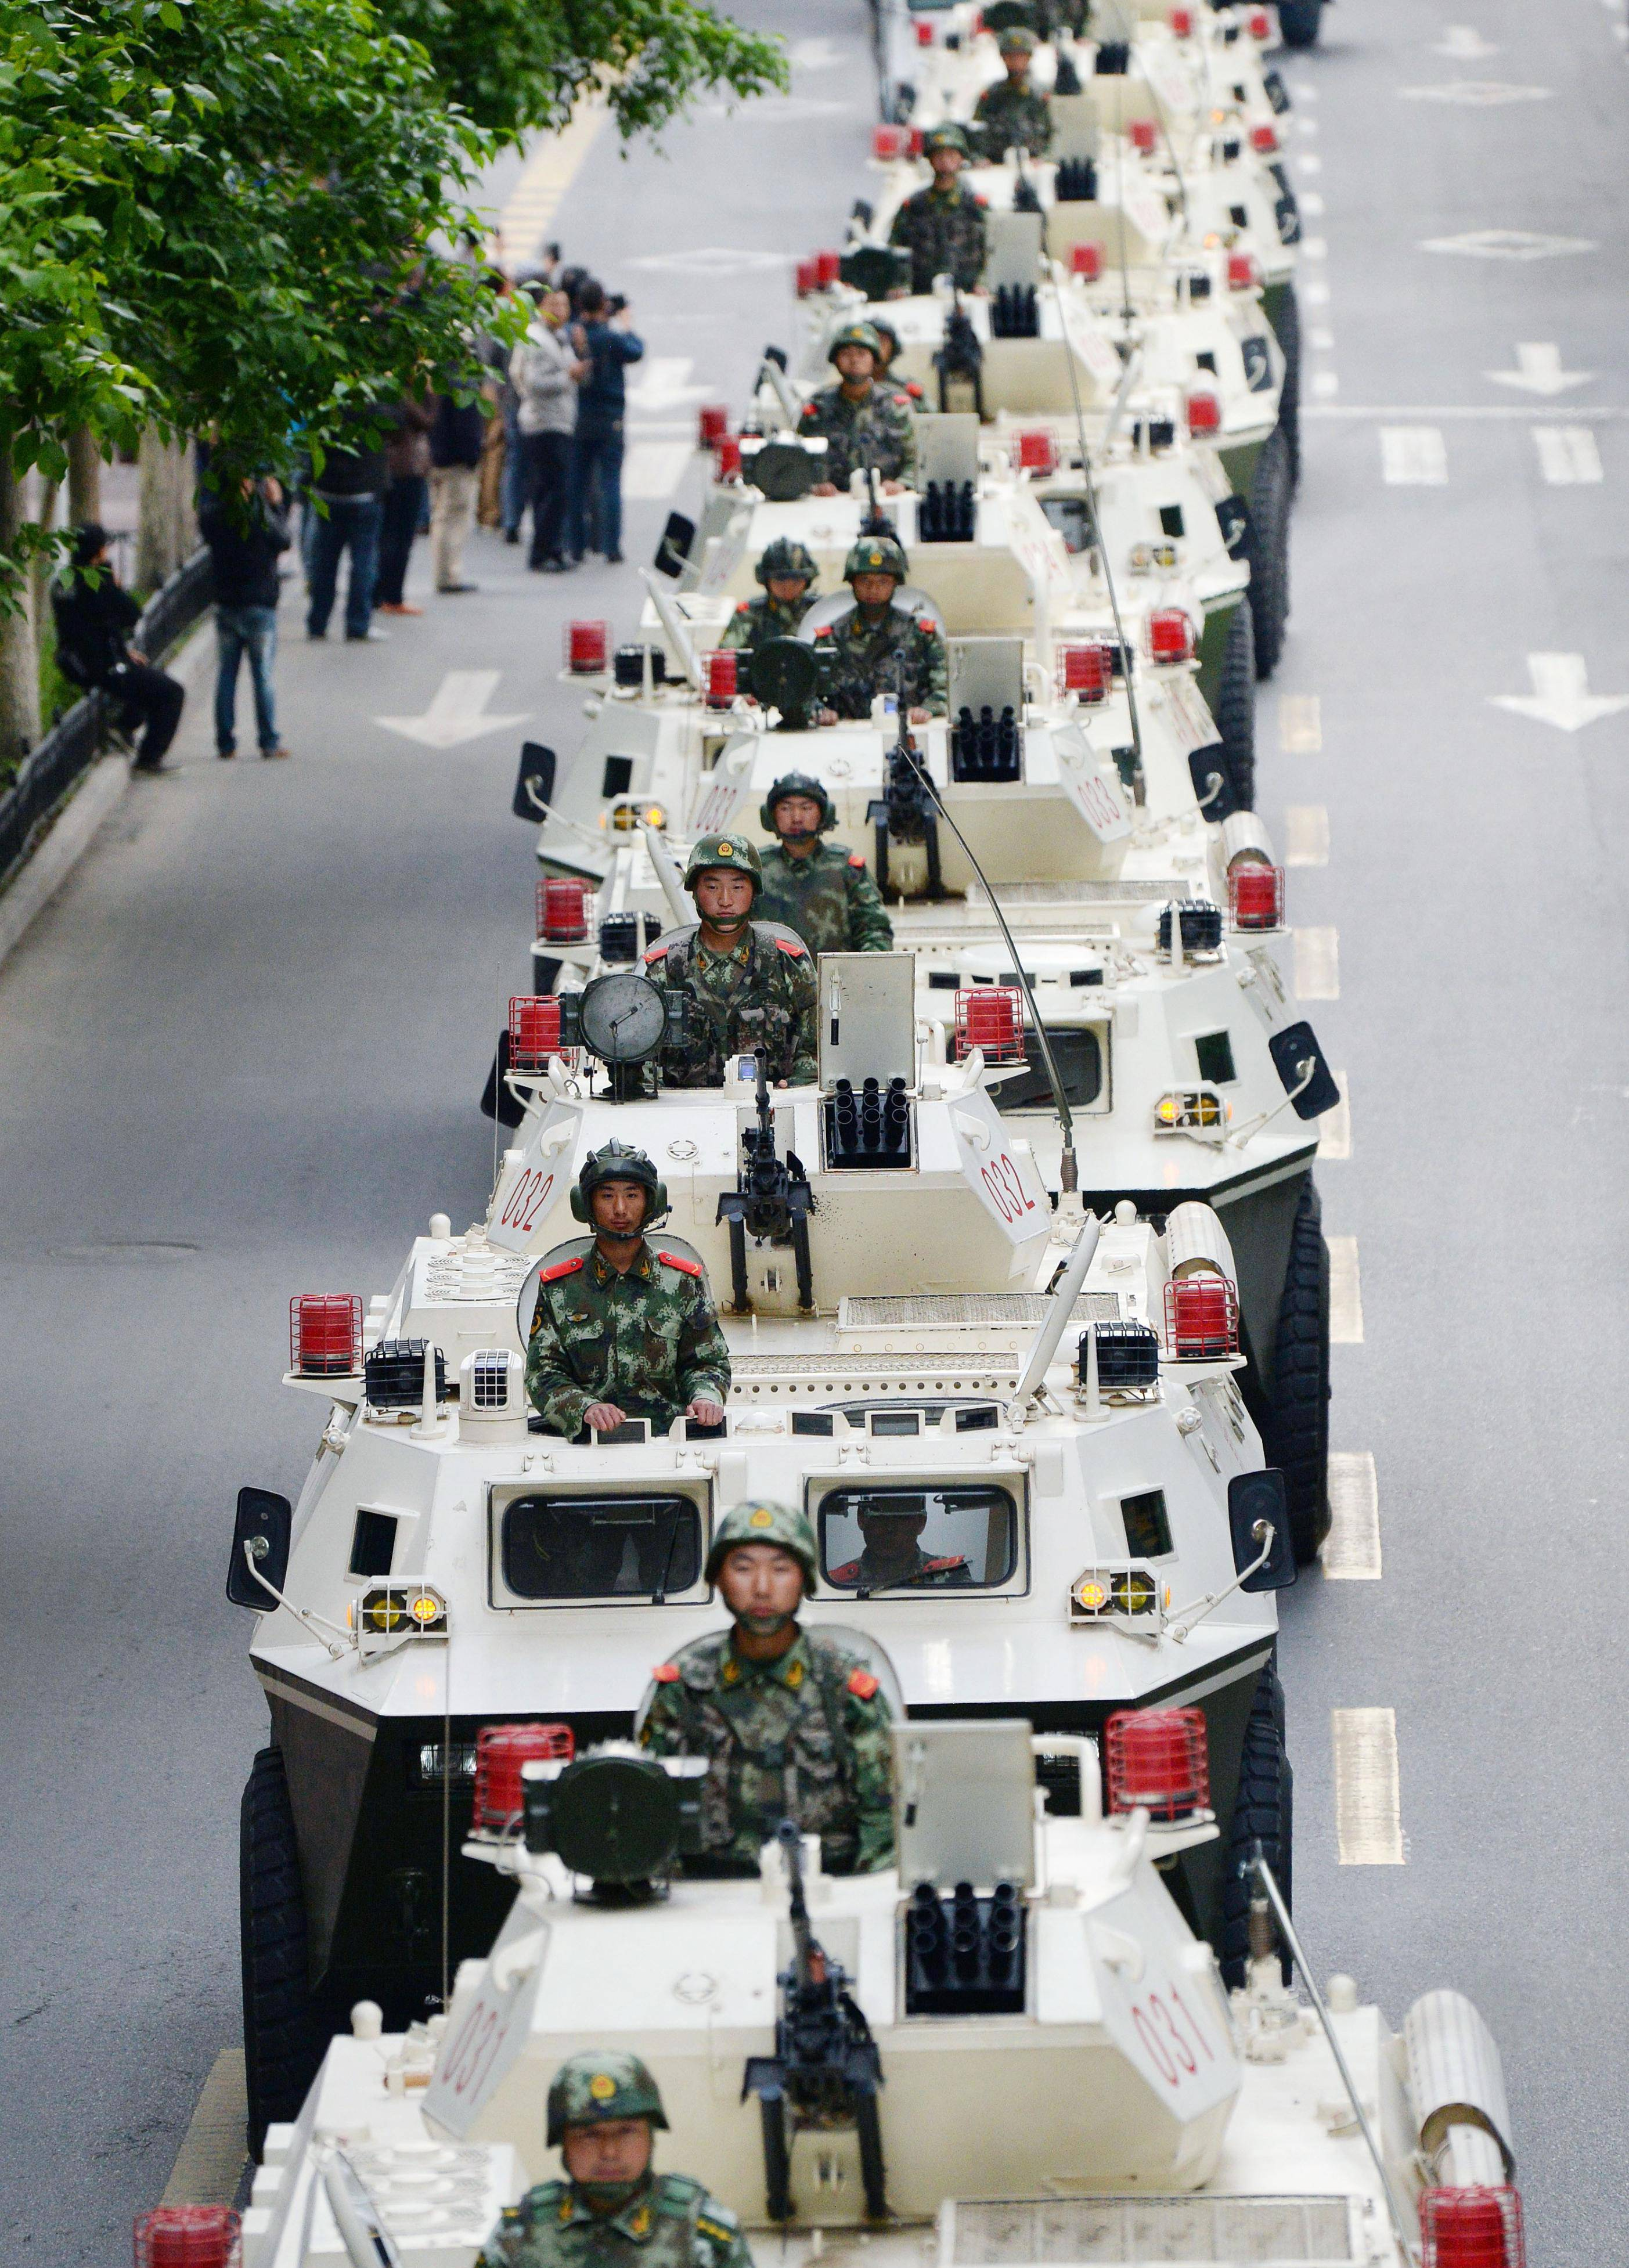 On Friday, May 23, paramilitary policemen on their armored vehicles parade on a street in Urumqi, China's northwestern region of Xinjiang. Authorities on Saturday, May 24, announced the first arrest in a bombing in China's Muslim northwest and said they were launching a yearlong anti-terrorism crackdown.